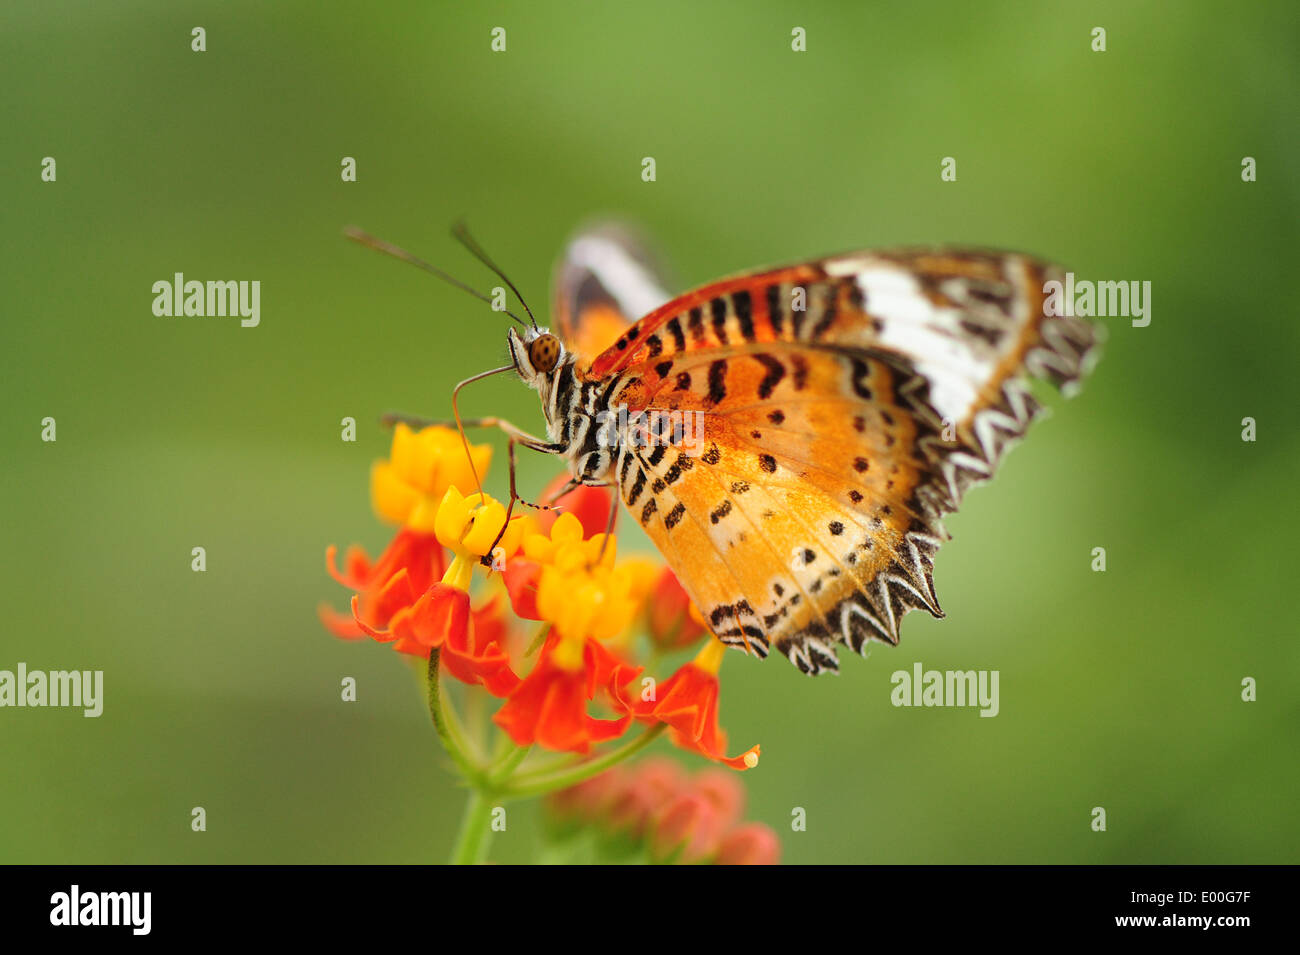 A Lacewing butterfly feeding on flowers - Stock Image